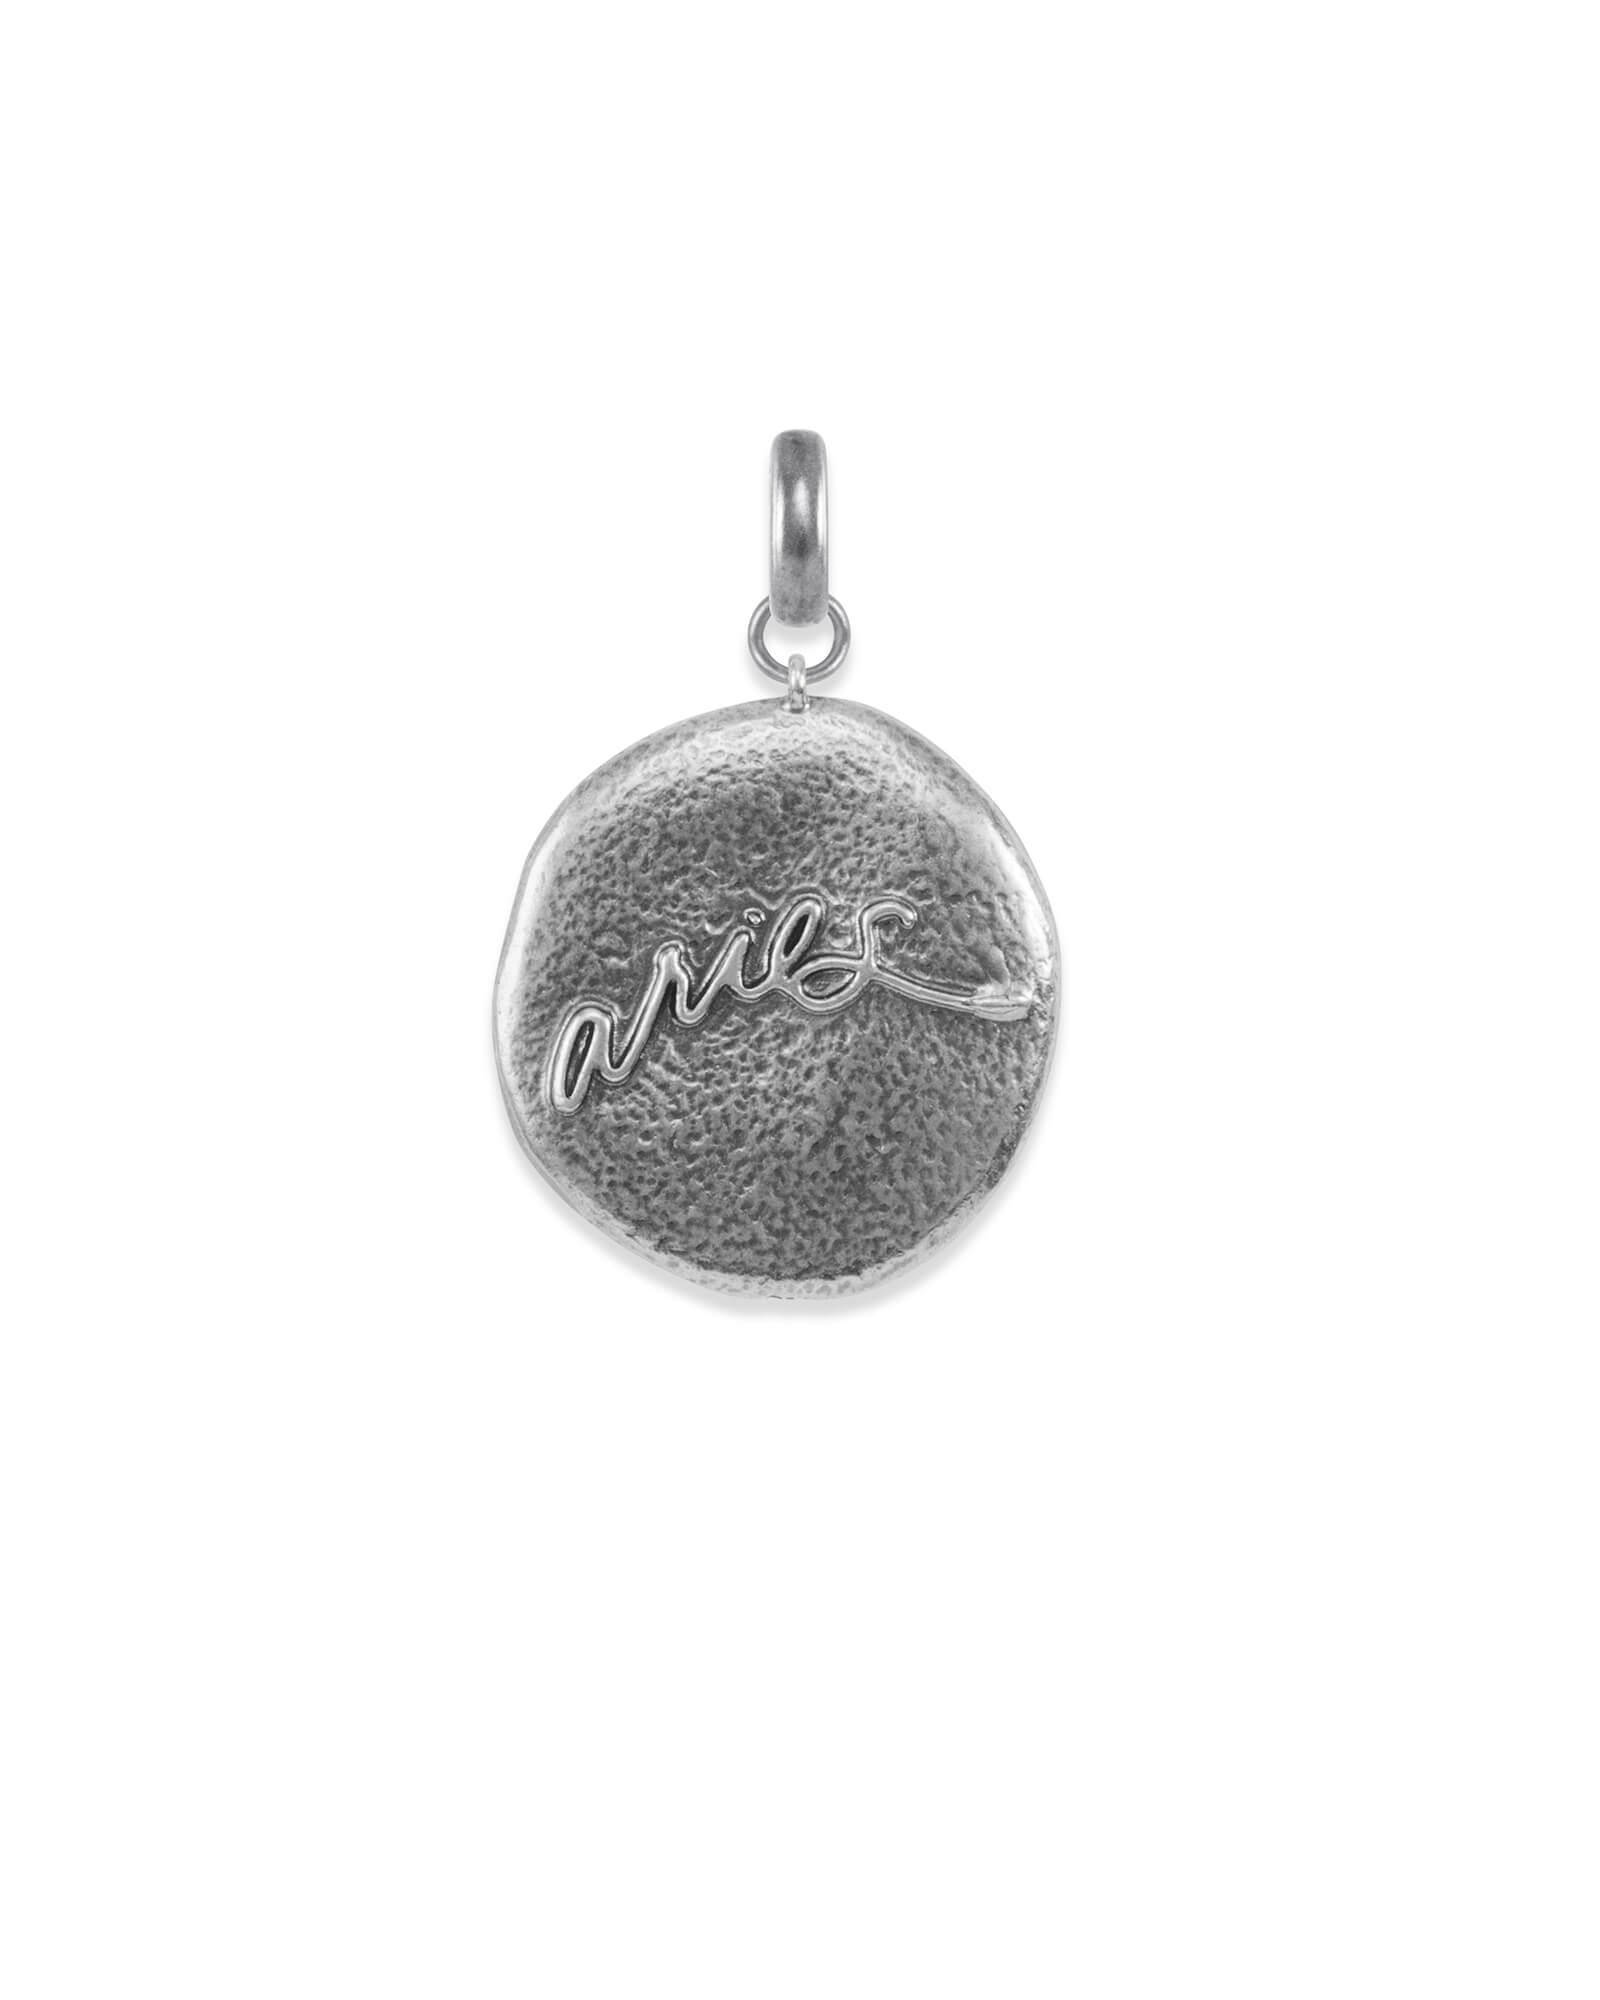 Aries Coin Charm in Vintage Silver